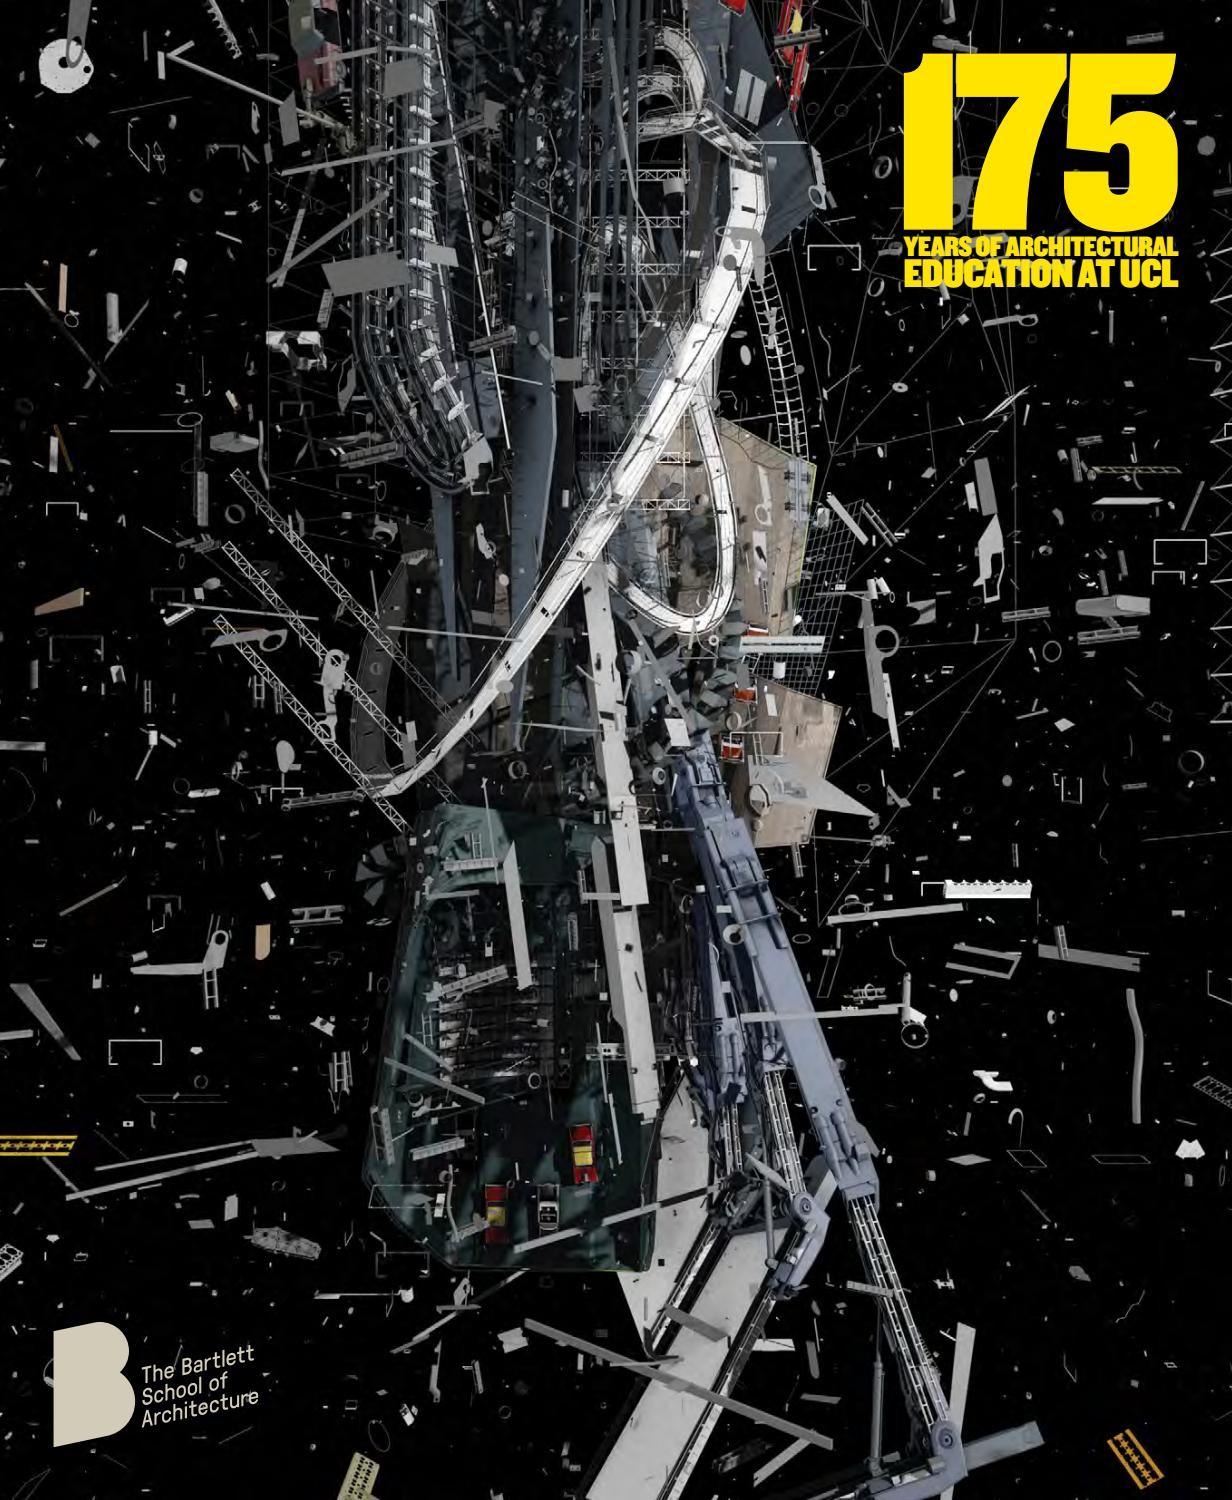 The Architectural Review + The Bartlett School of Architecture -  7 FEBRUARY 2016